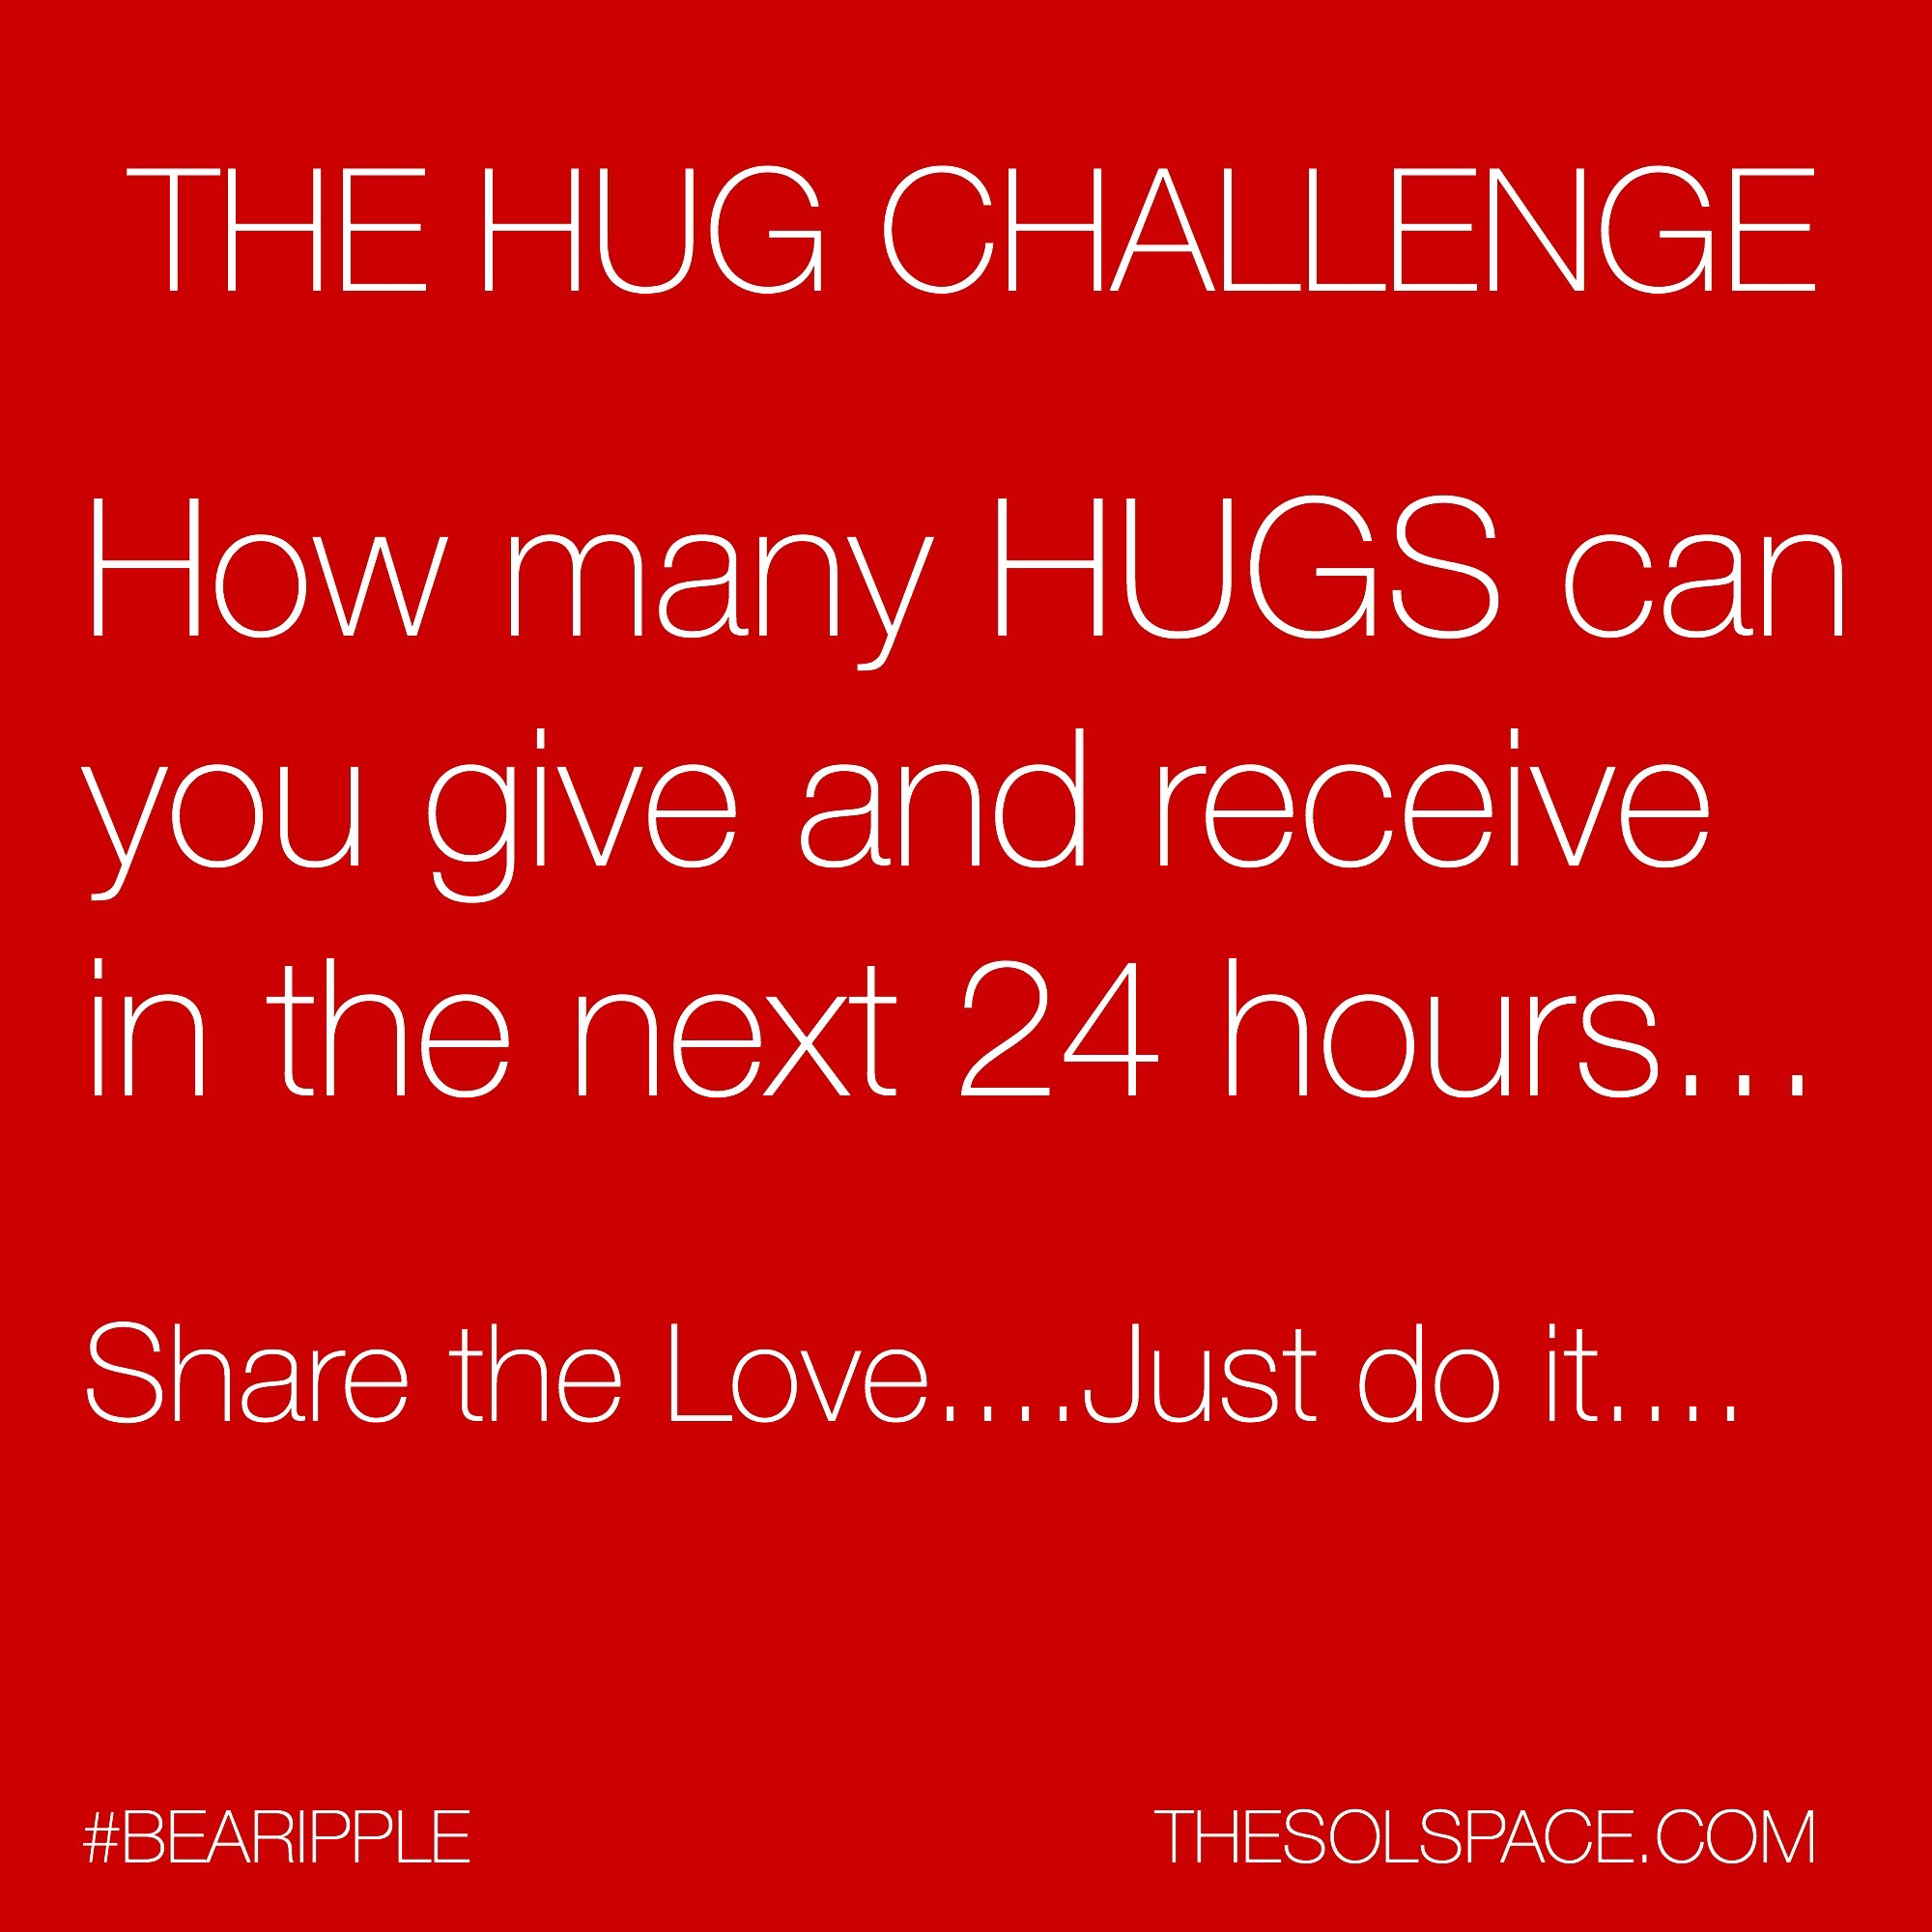 #BeARipple..How many hugs can you give and receive in the next 24 hours..share the love @theSOLspace